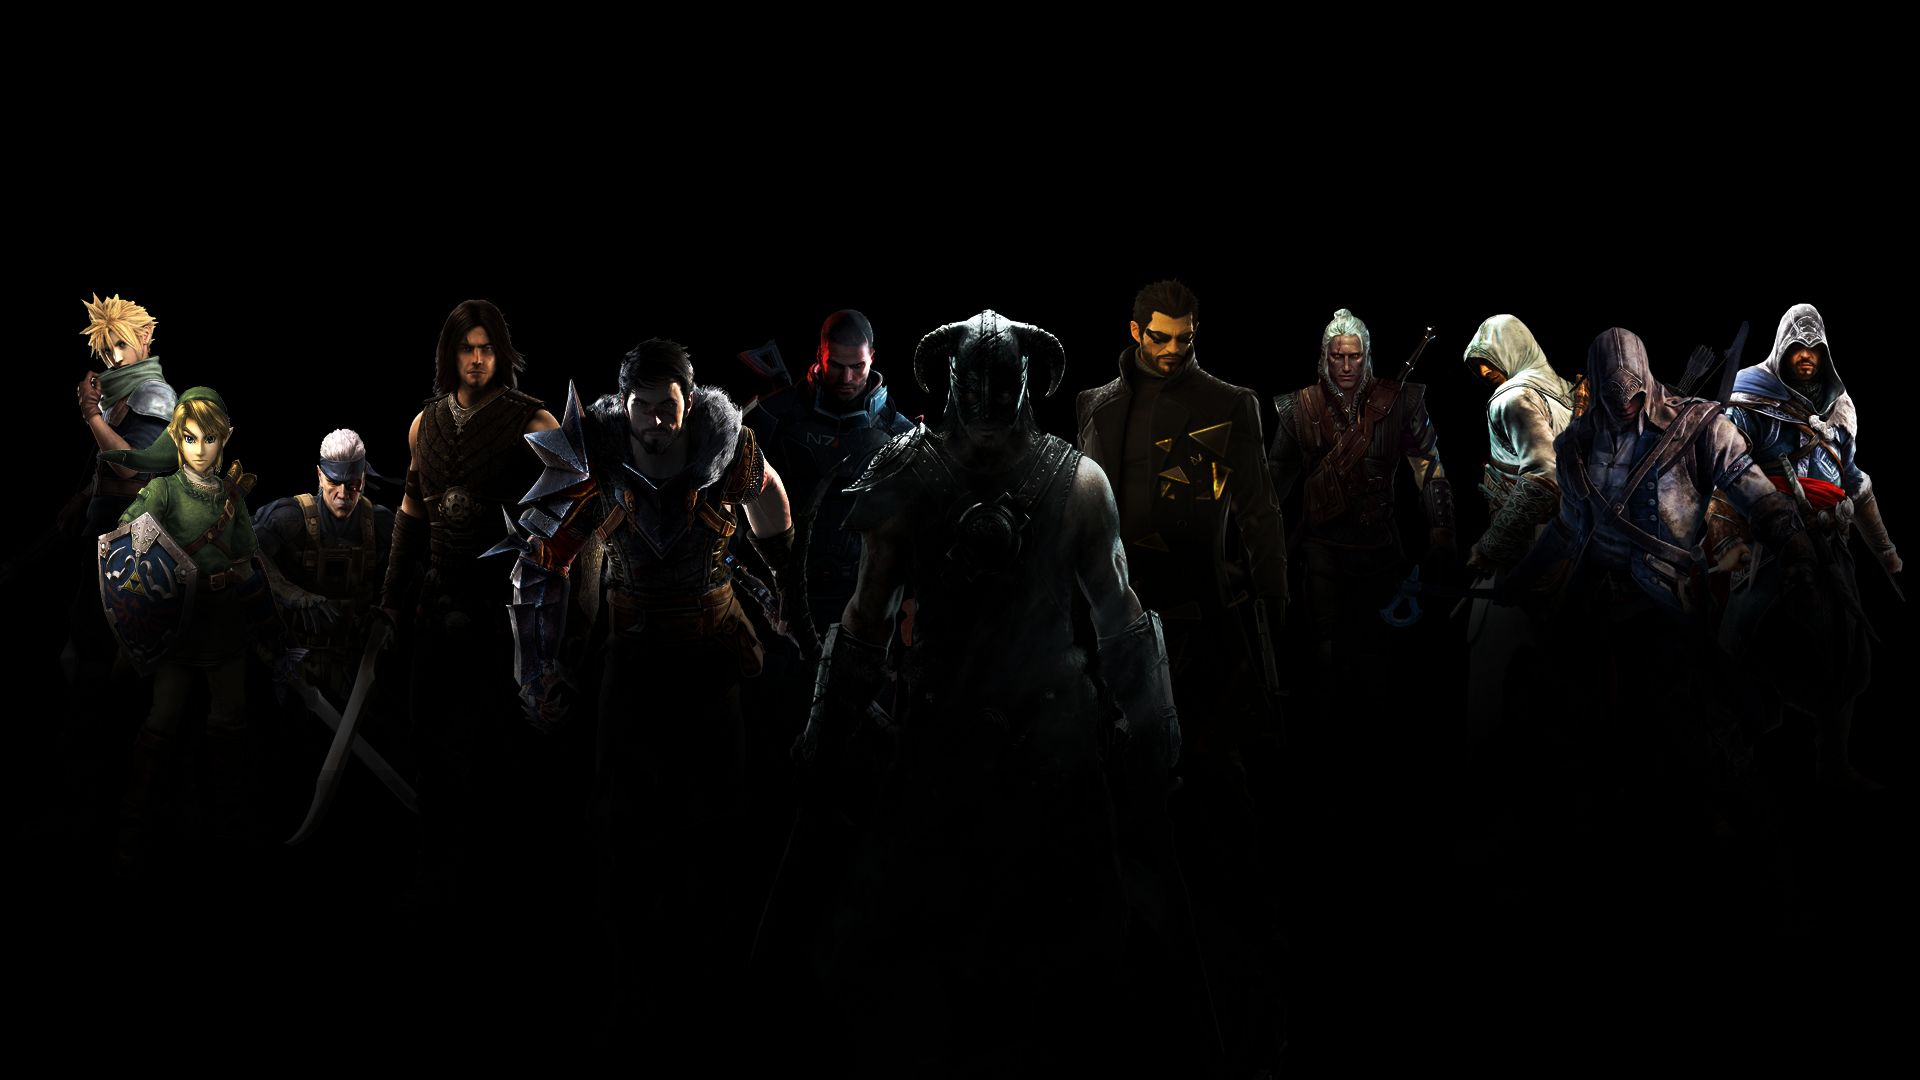 Collection of All Games Wallpapers on HDWallpapers